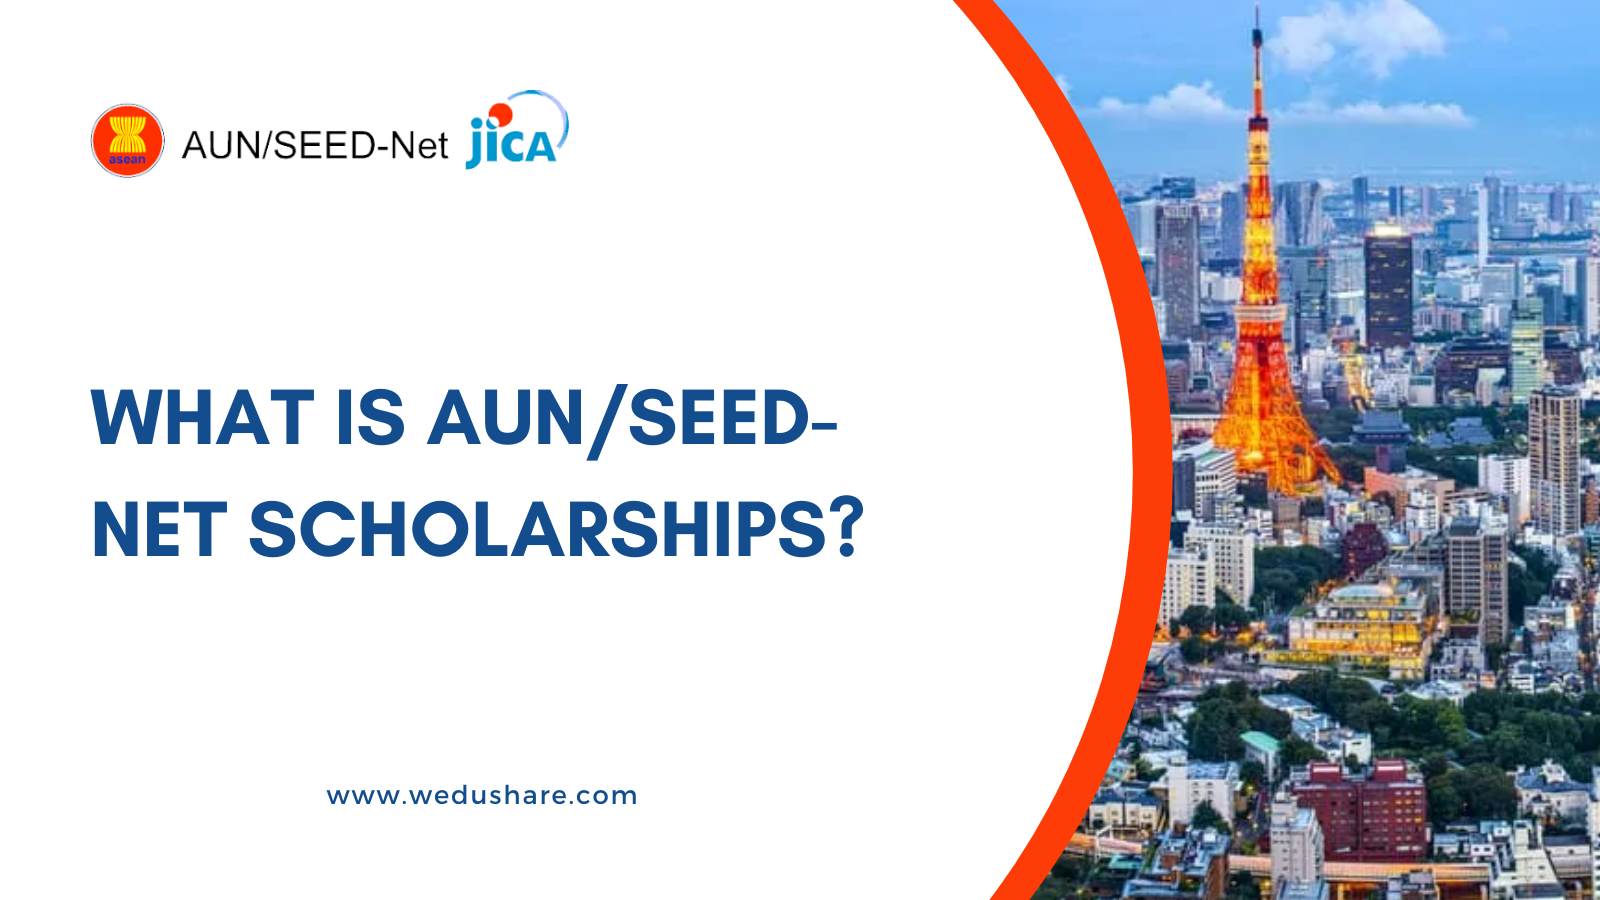 What is AUN/SEED-Net Scholarship?